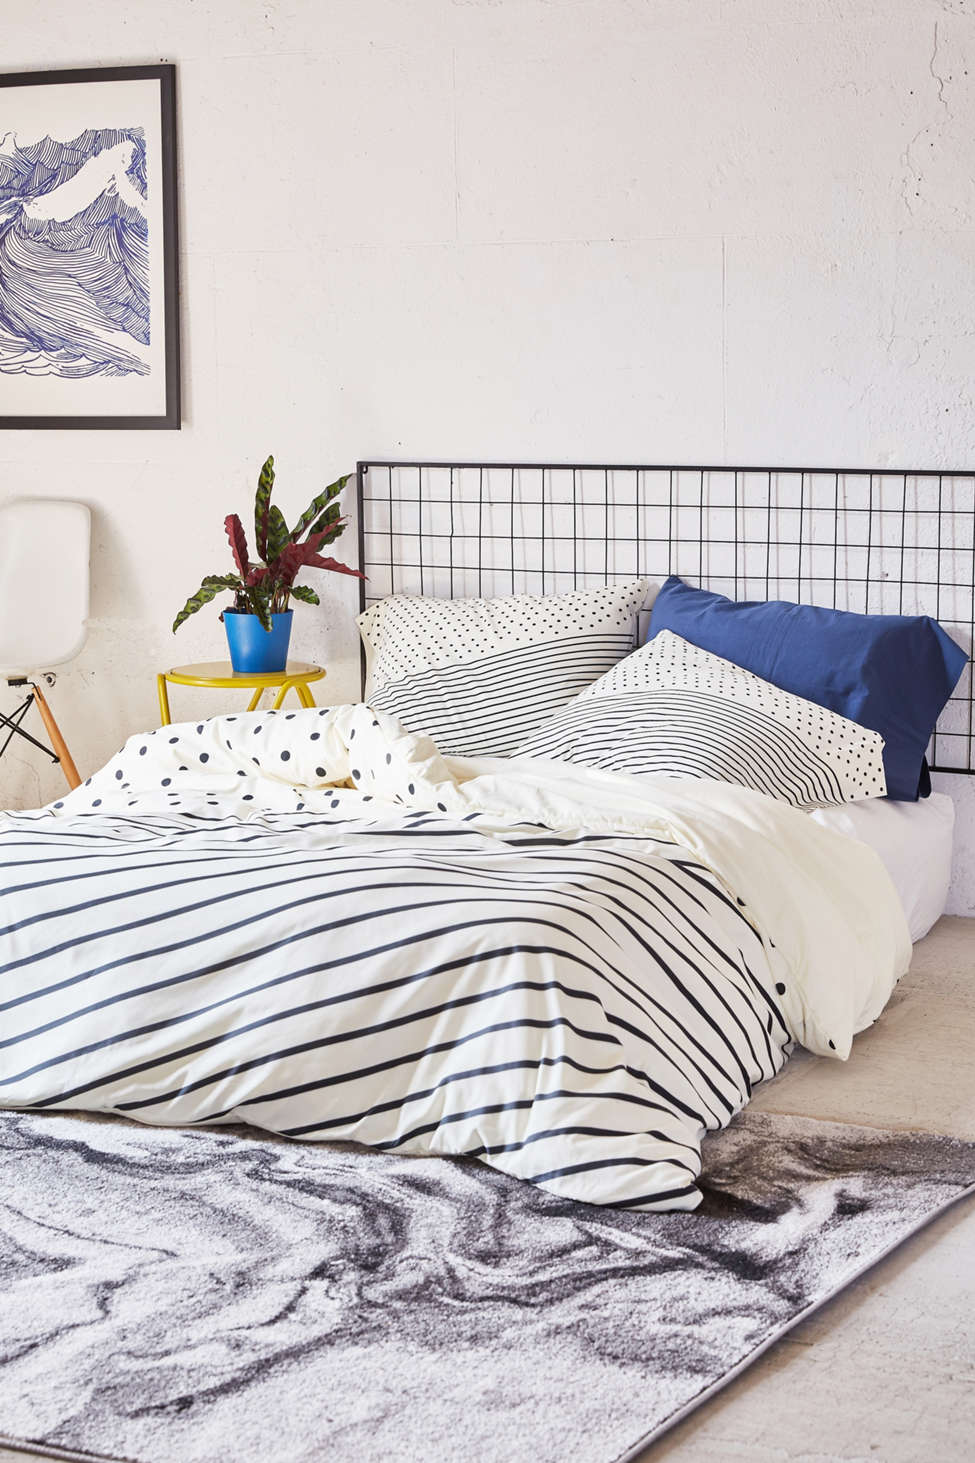 Slide View: 1: Allyson Johnson For DENY Opposites Attract Duvet Cover